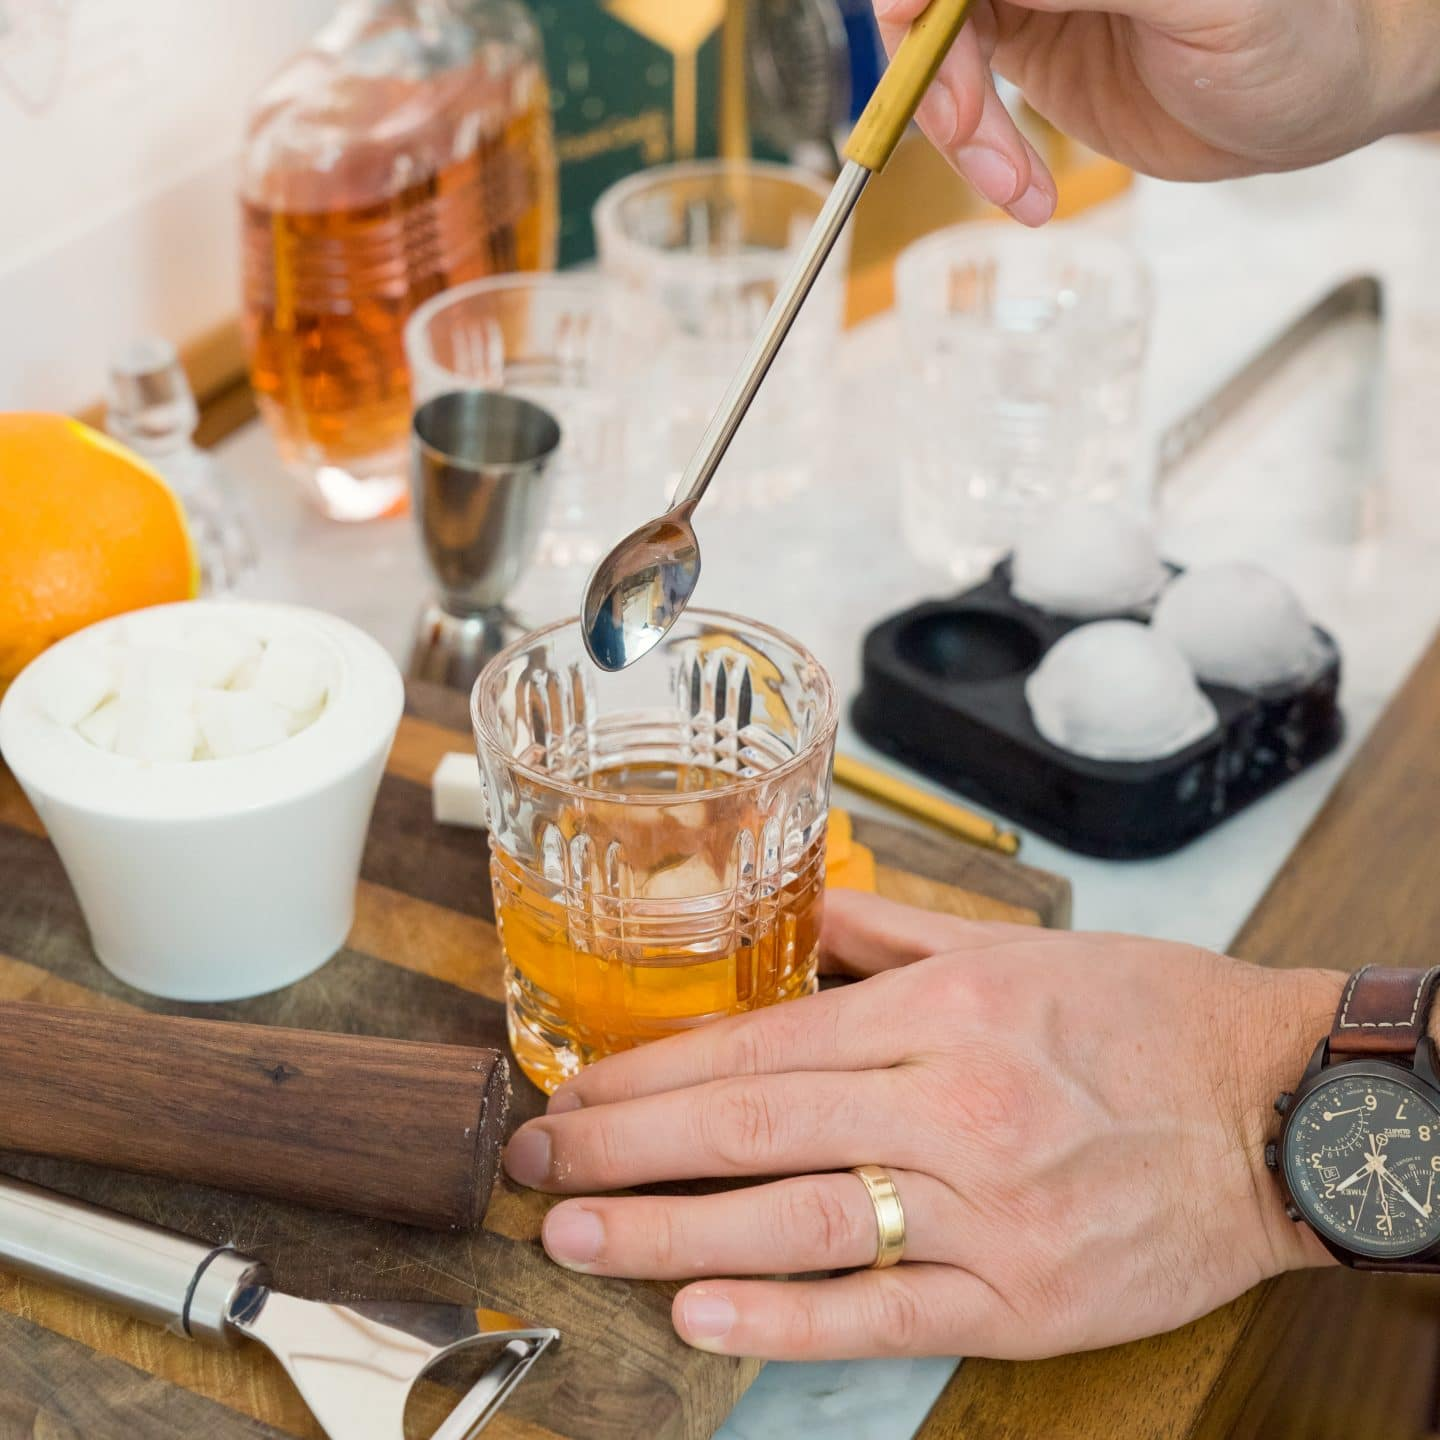 How to Make a Classic Old Fashioned Cocktail | Recipe | www.ashleybrookedesigns.com